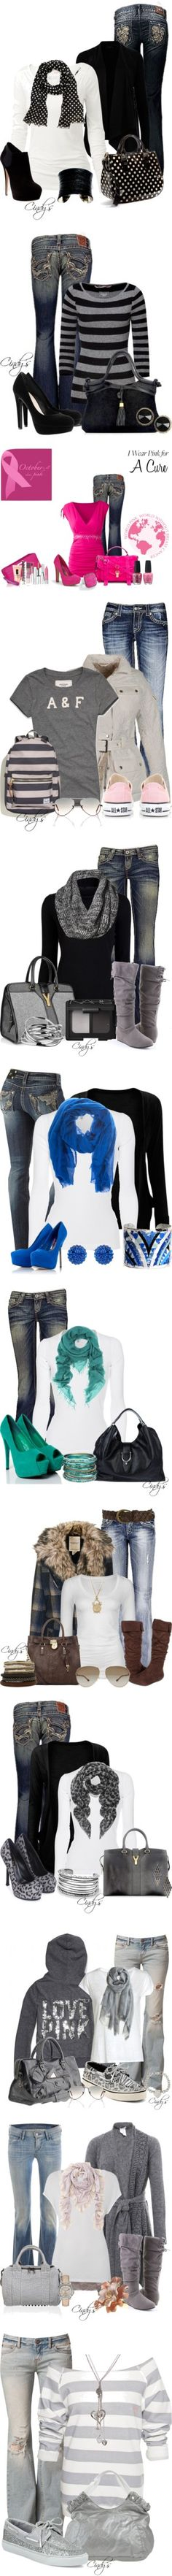 jean, casual clothes, winter style, winter looks, heel, converse shoes, casual outfits, closet, fall winter outfits